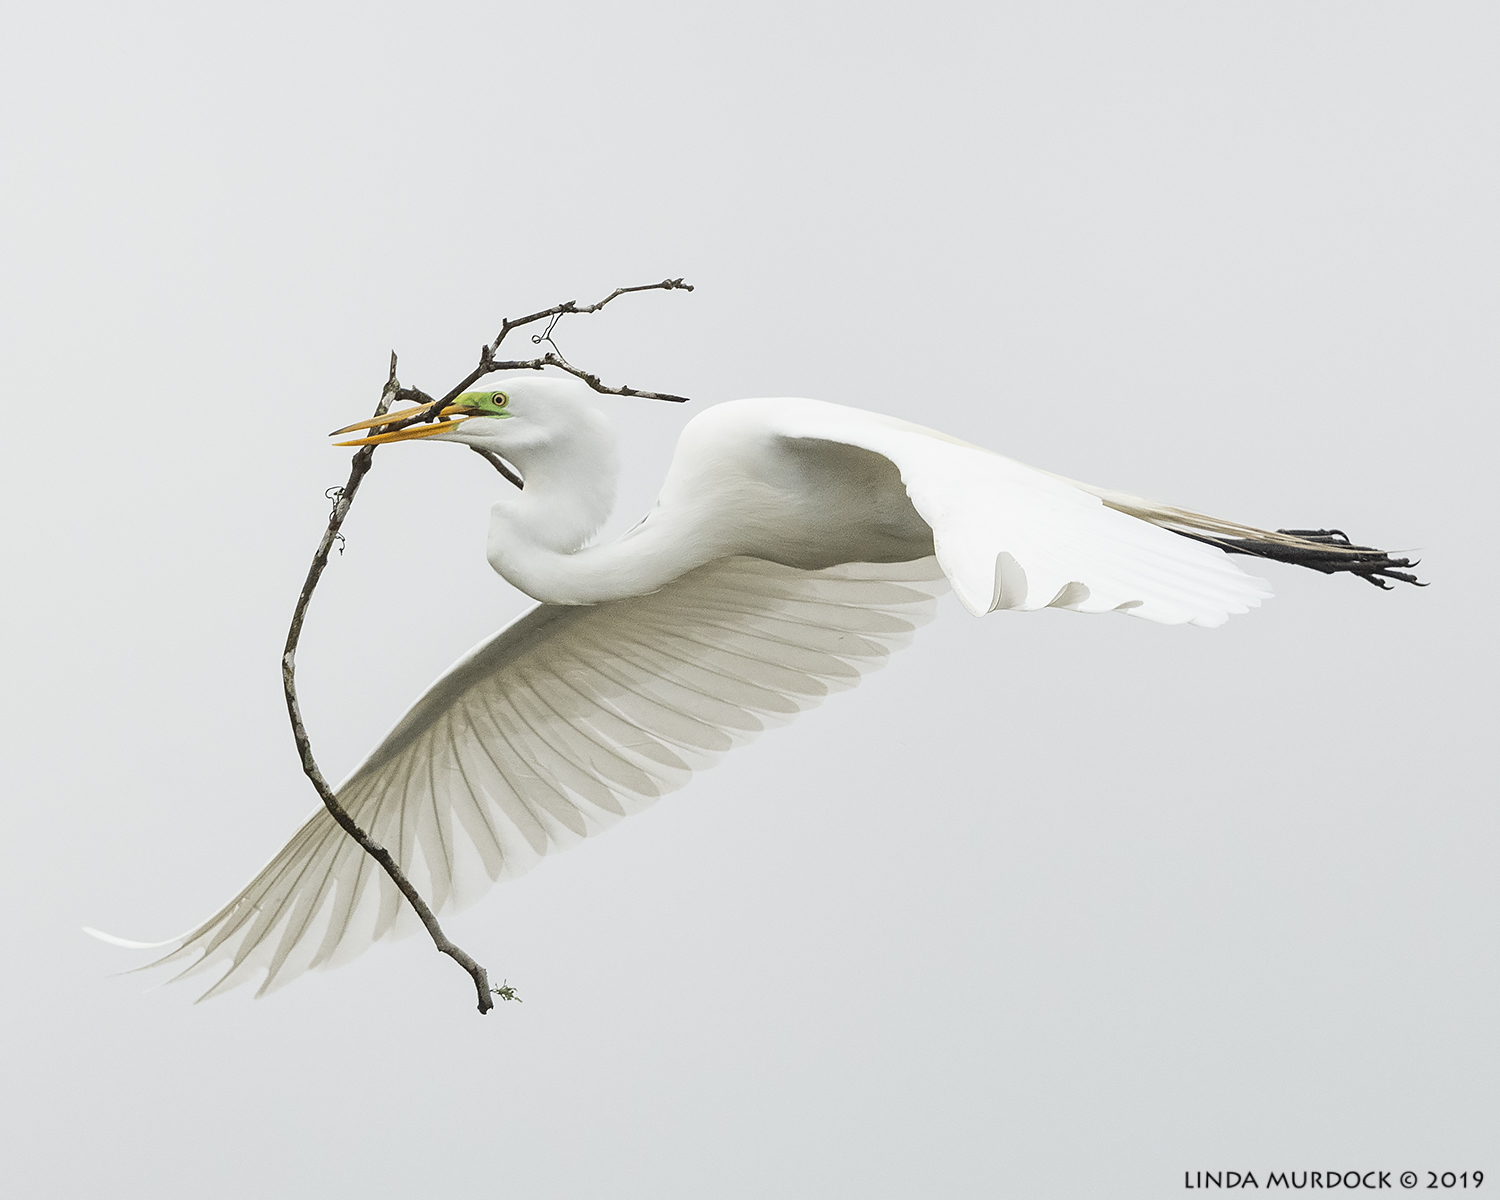 Great Egret with stick for his honey  Nikon D850 with Nikkor 500 f/5.6 PF VR ~ 1/2000 sec f/6.3 ISO 1600; hand-held